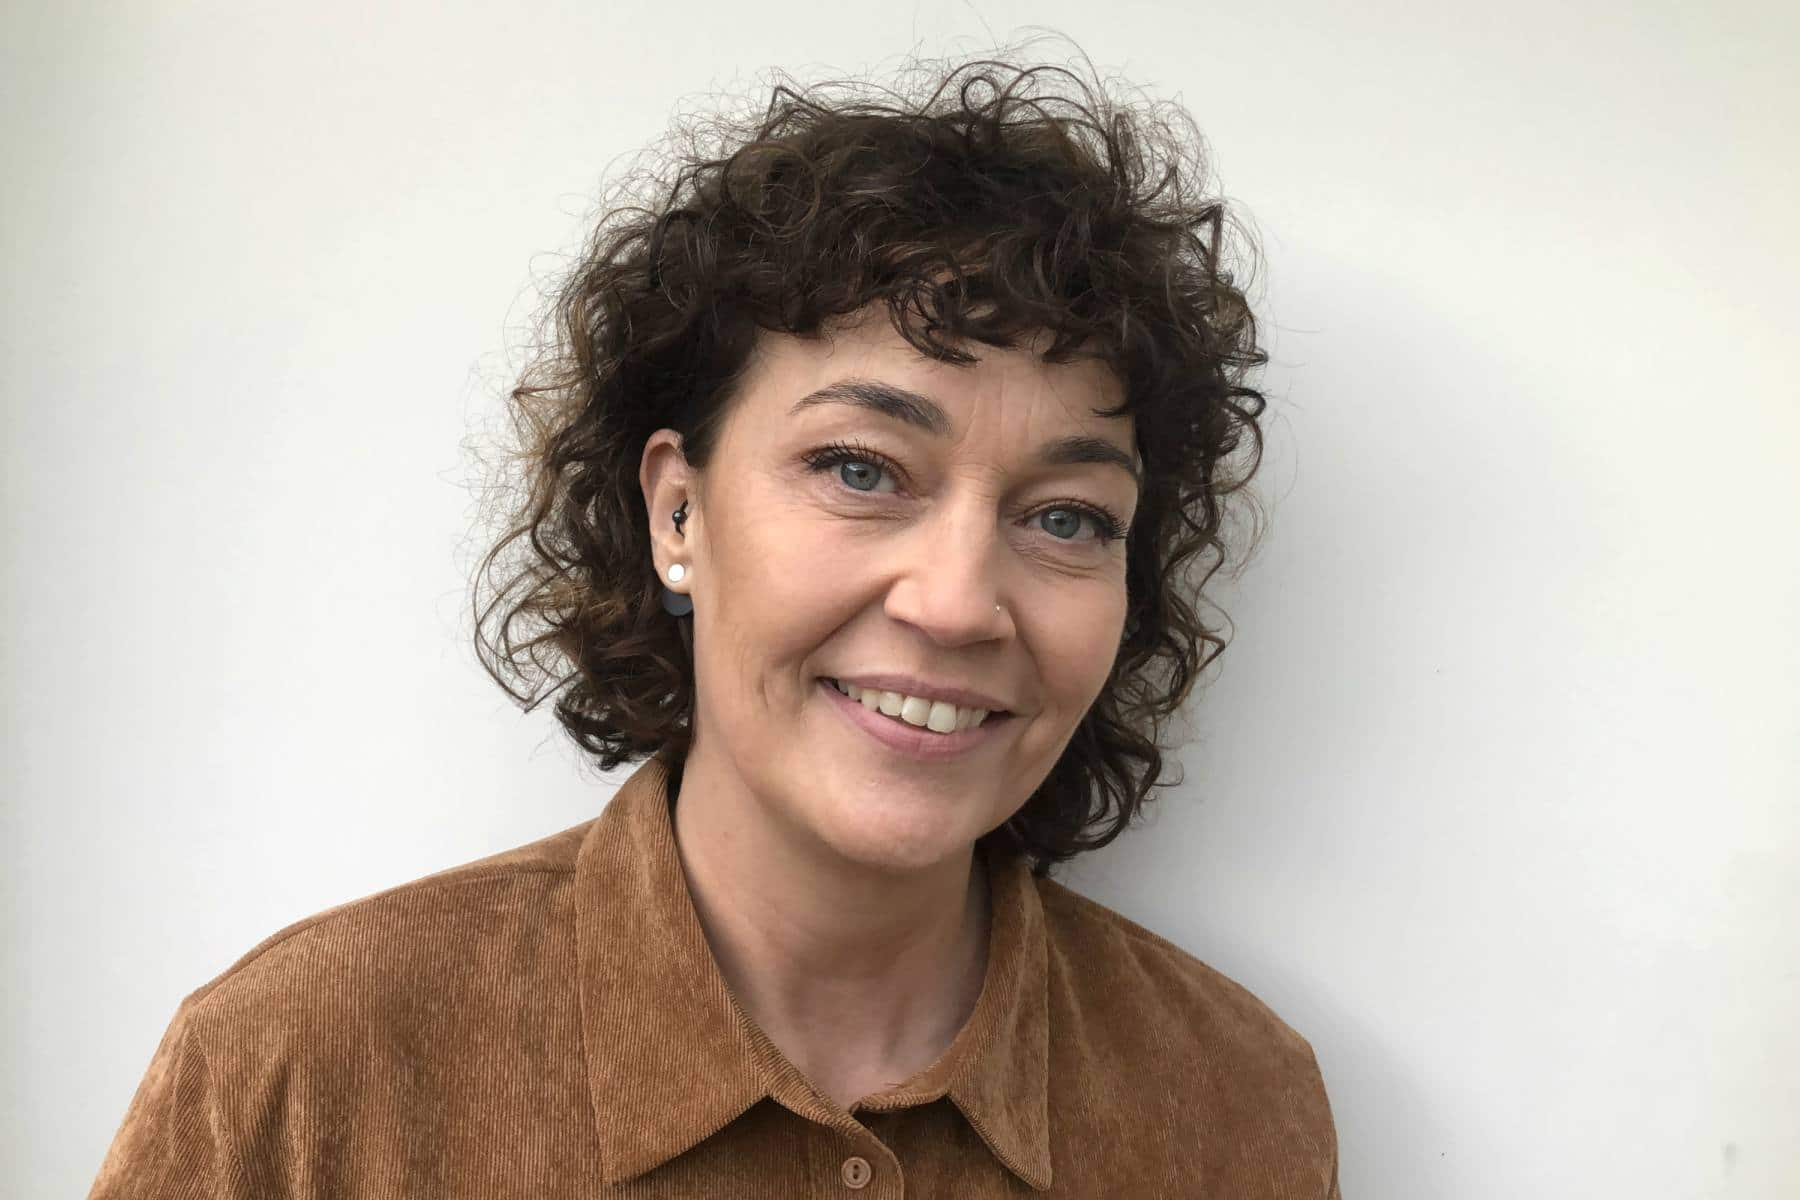 Psykoterapeut Carina Hedelund